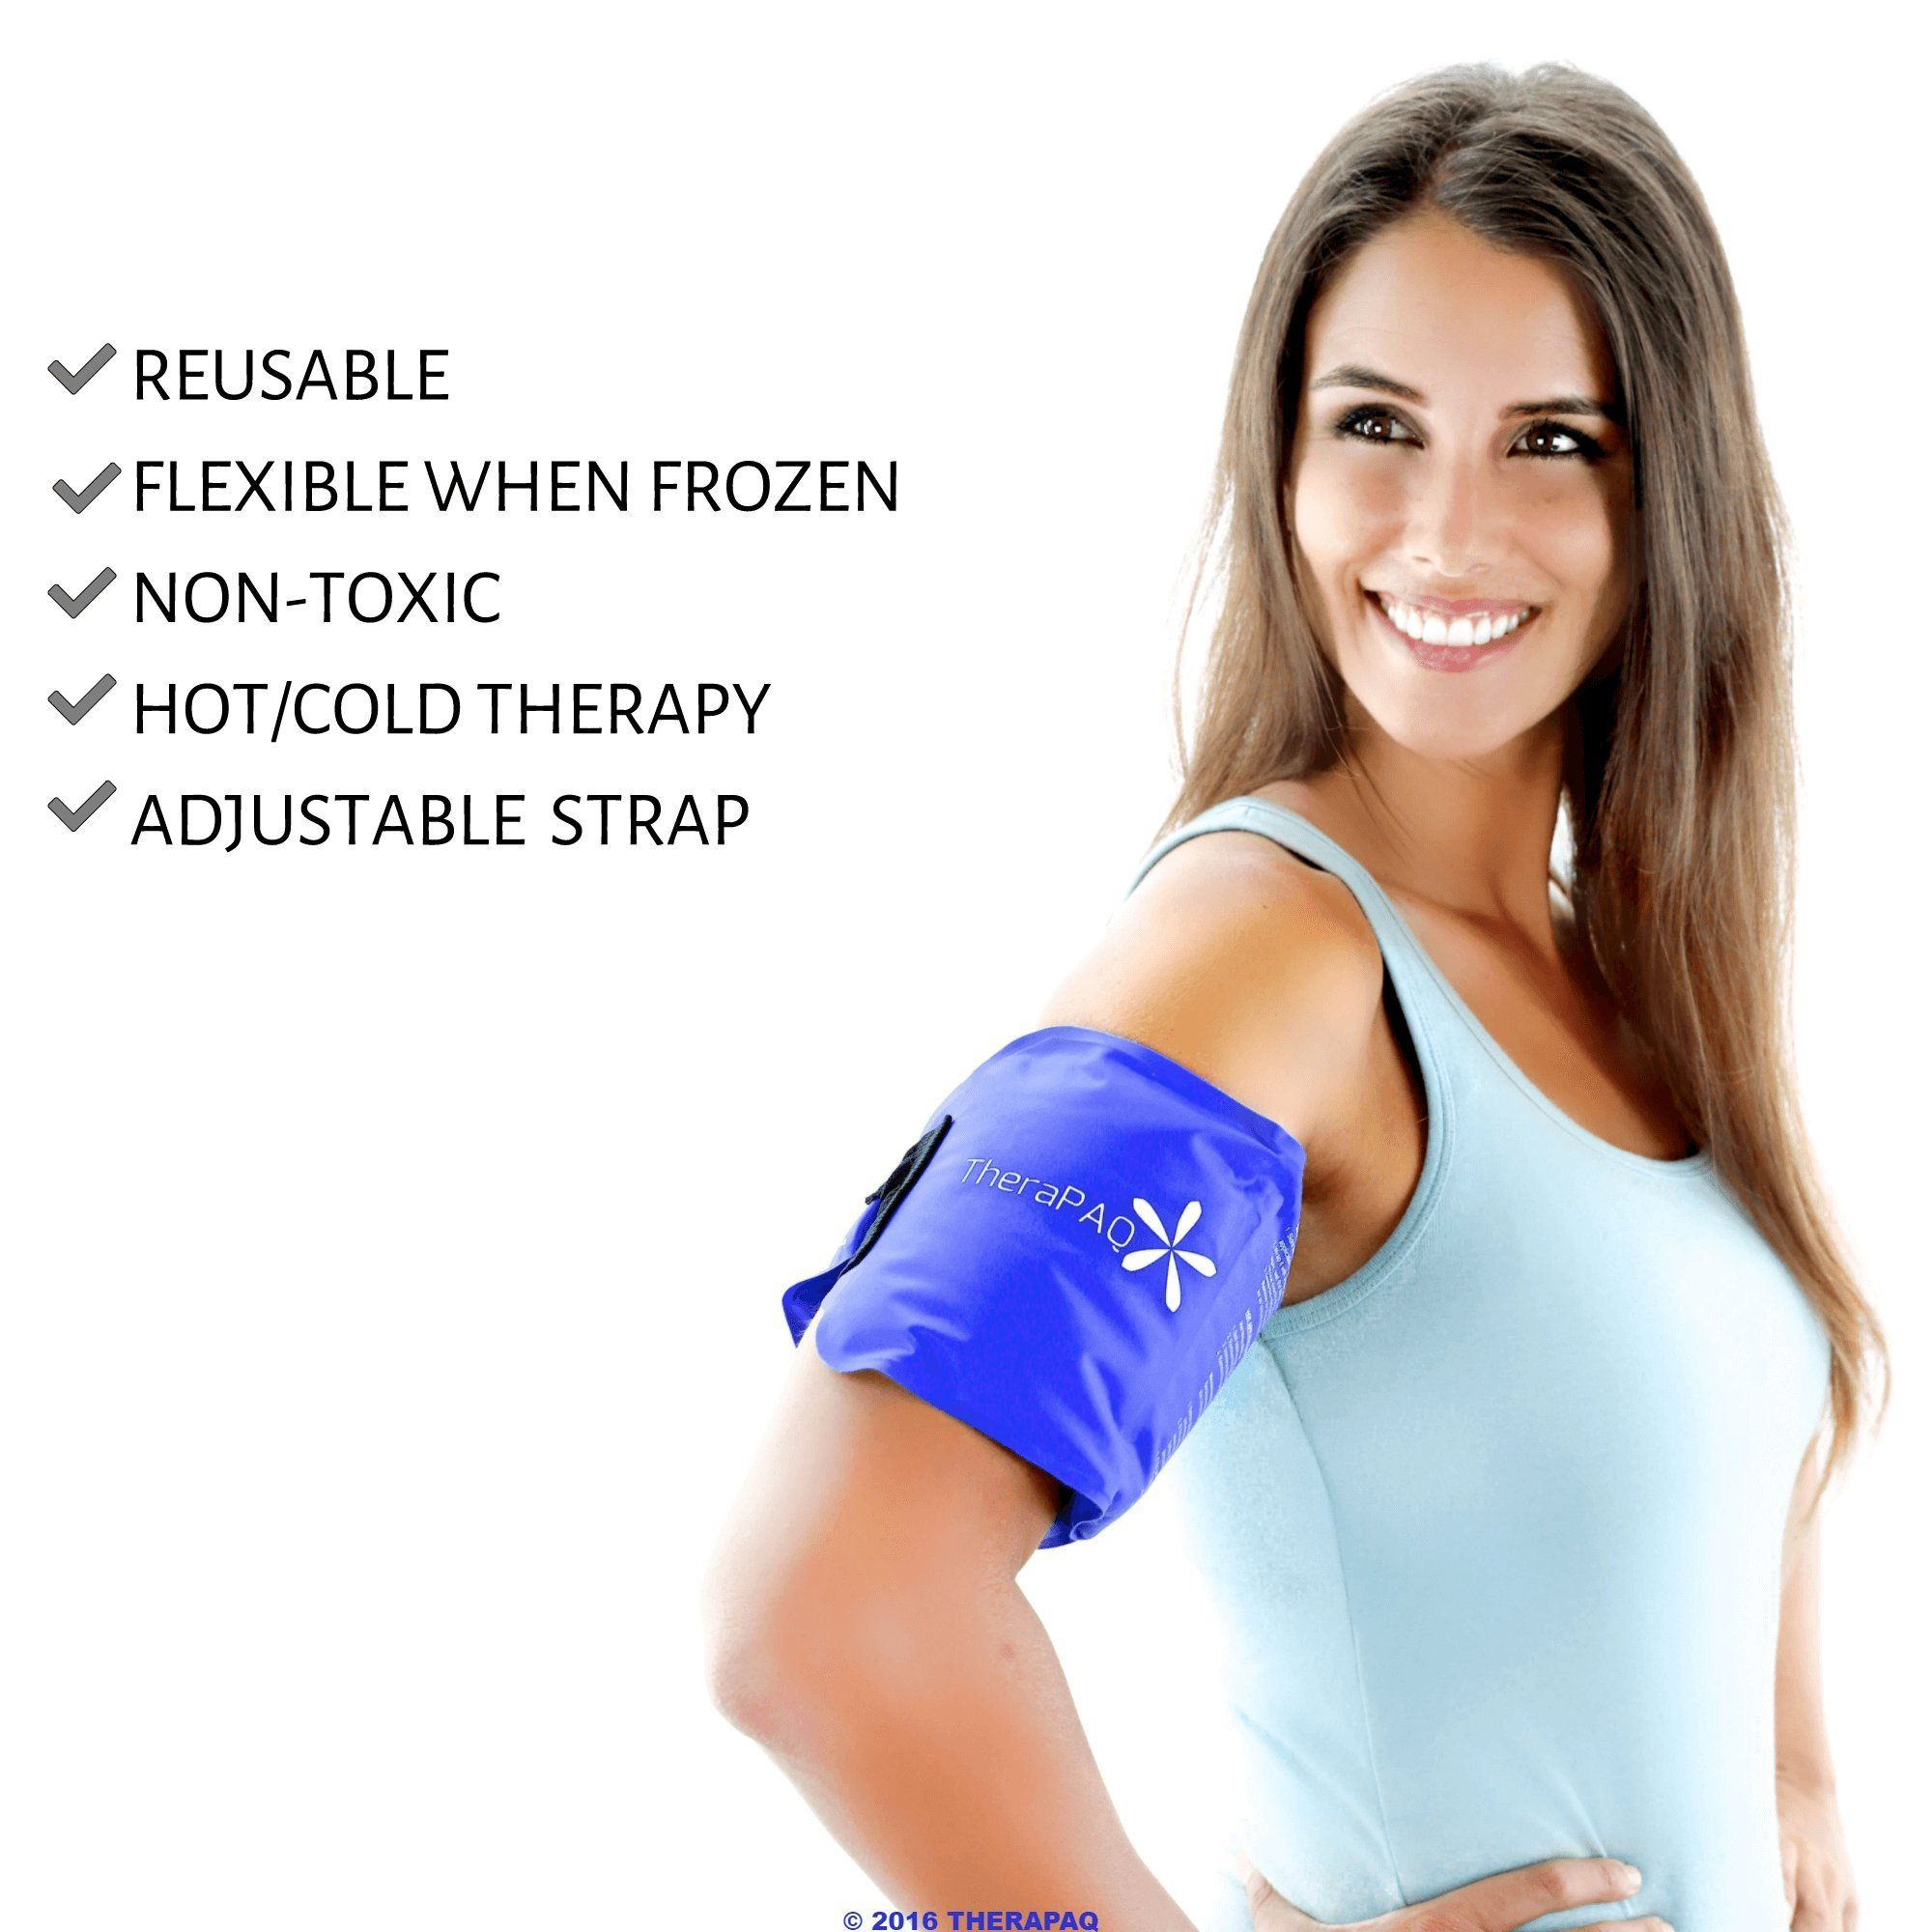 Reusable Ice Pack With Strap By Therapaq Soft And Flexible Gel Pack For Hot And Cold Compress Best As Heat Pad O Cold Therapy Gel Pack Ice Packs For Injuries